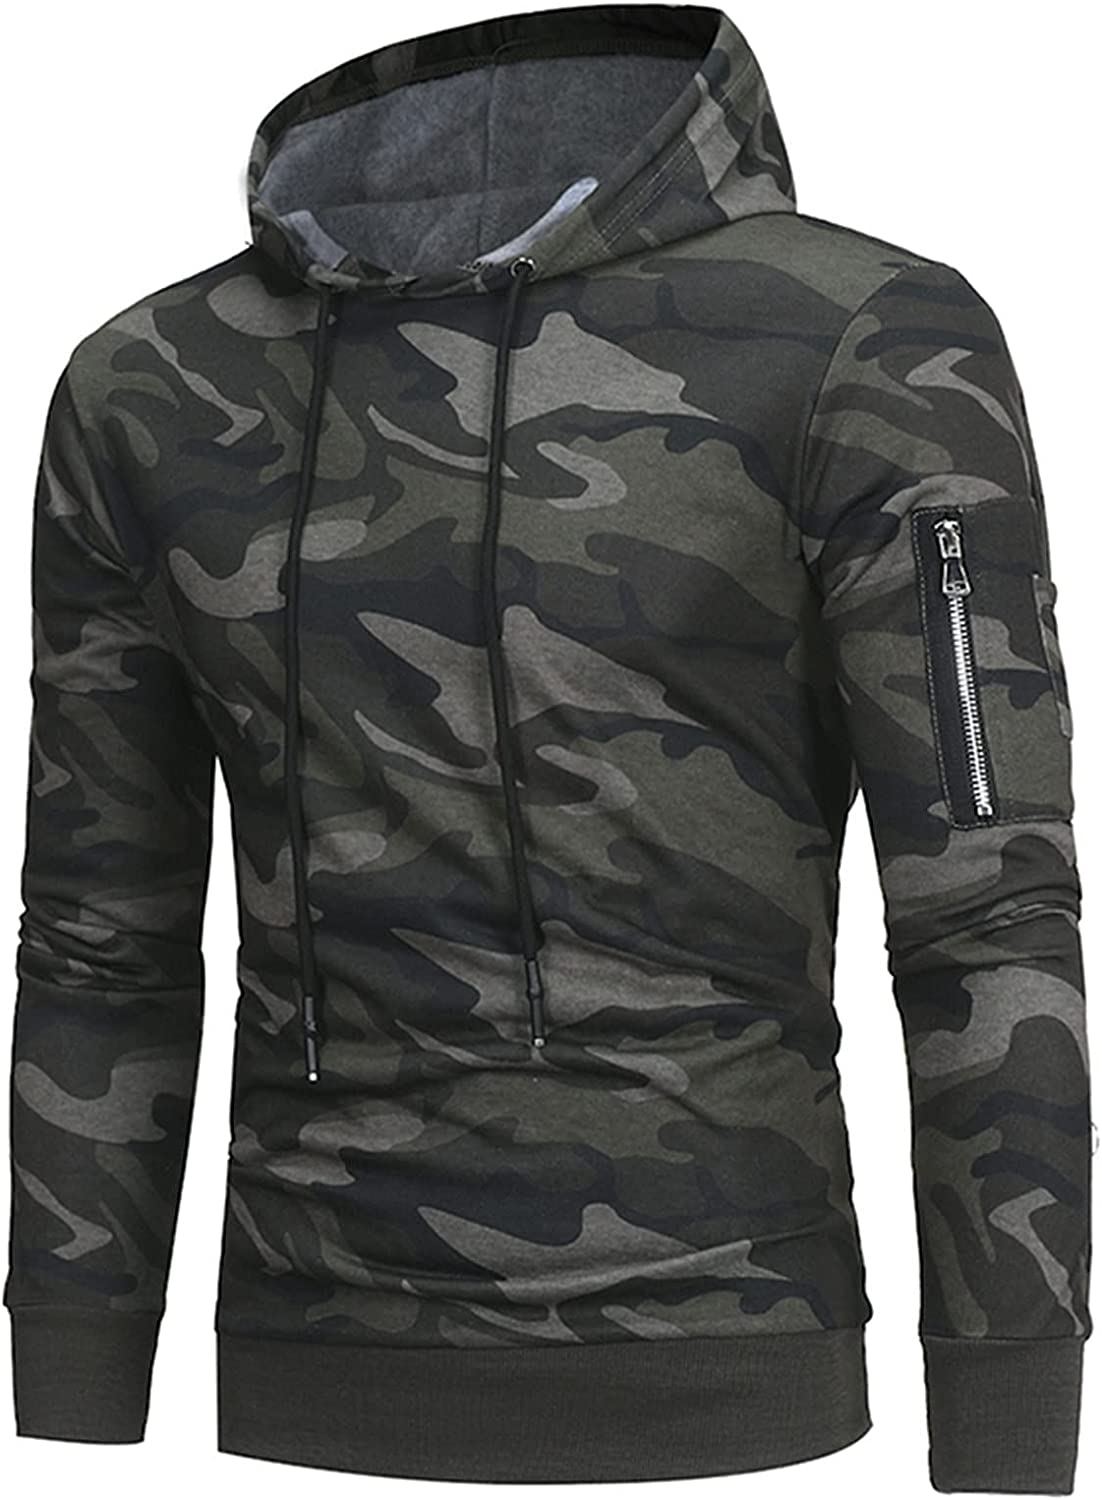 HONGJ Camo Hoodies for Mens, Fall Camouflage Ribbed Cuff Drawstring Casual Hooded Sweatshirts Workout Fitness Pullover